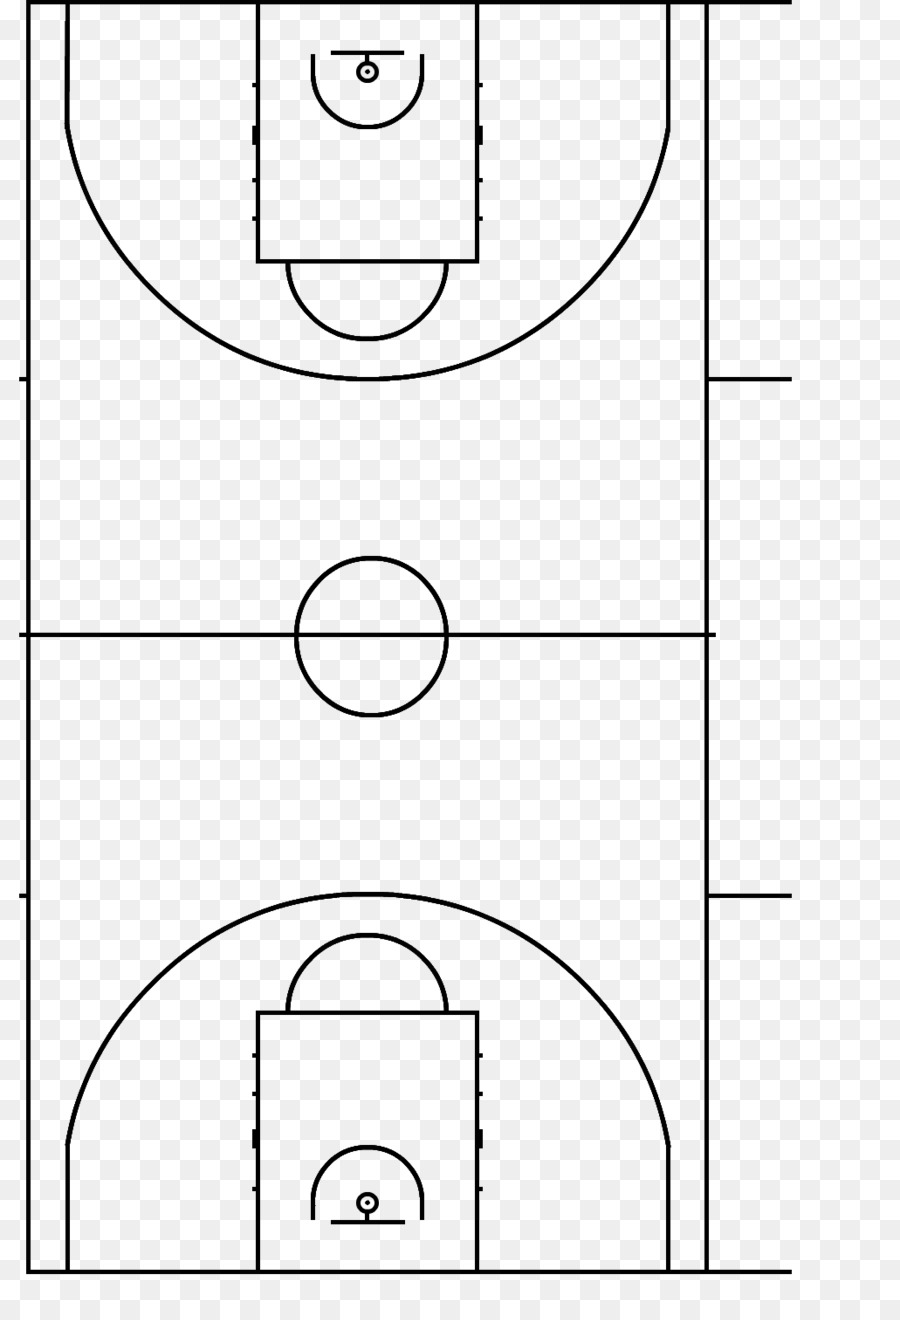 hight resolution of basketball court fiba basketball point line art png